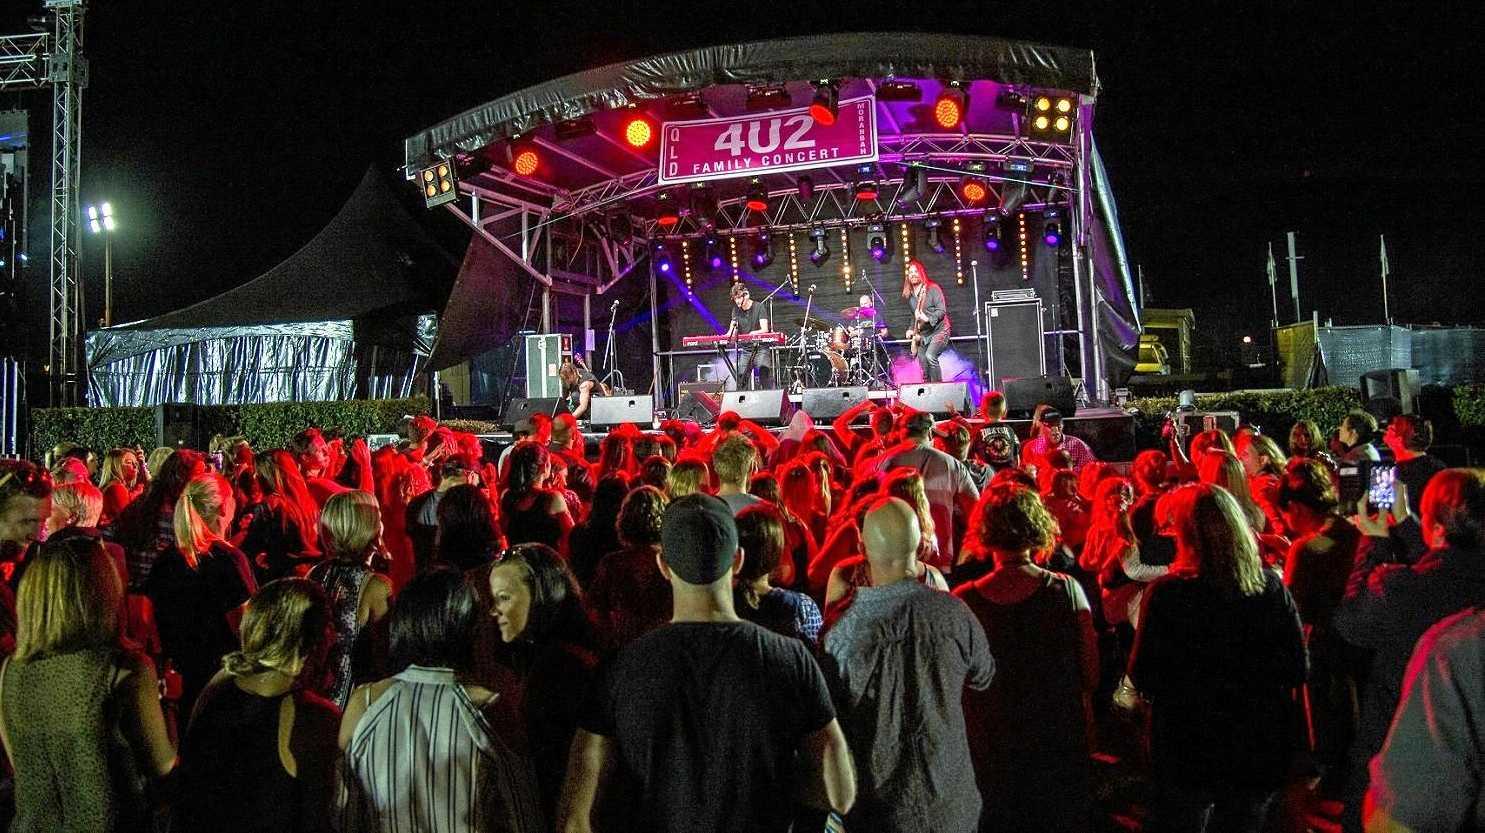 A host of headline Australian acts will perform in Moranbah at the annual 4U2 Family Concert.